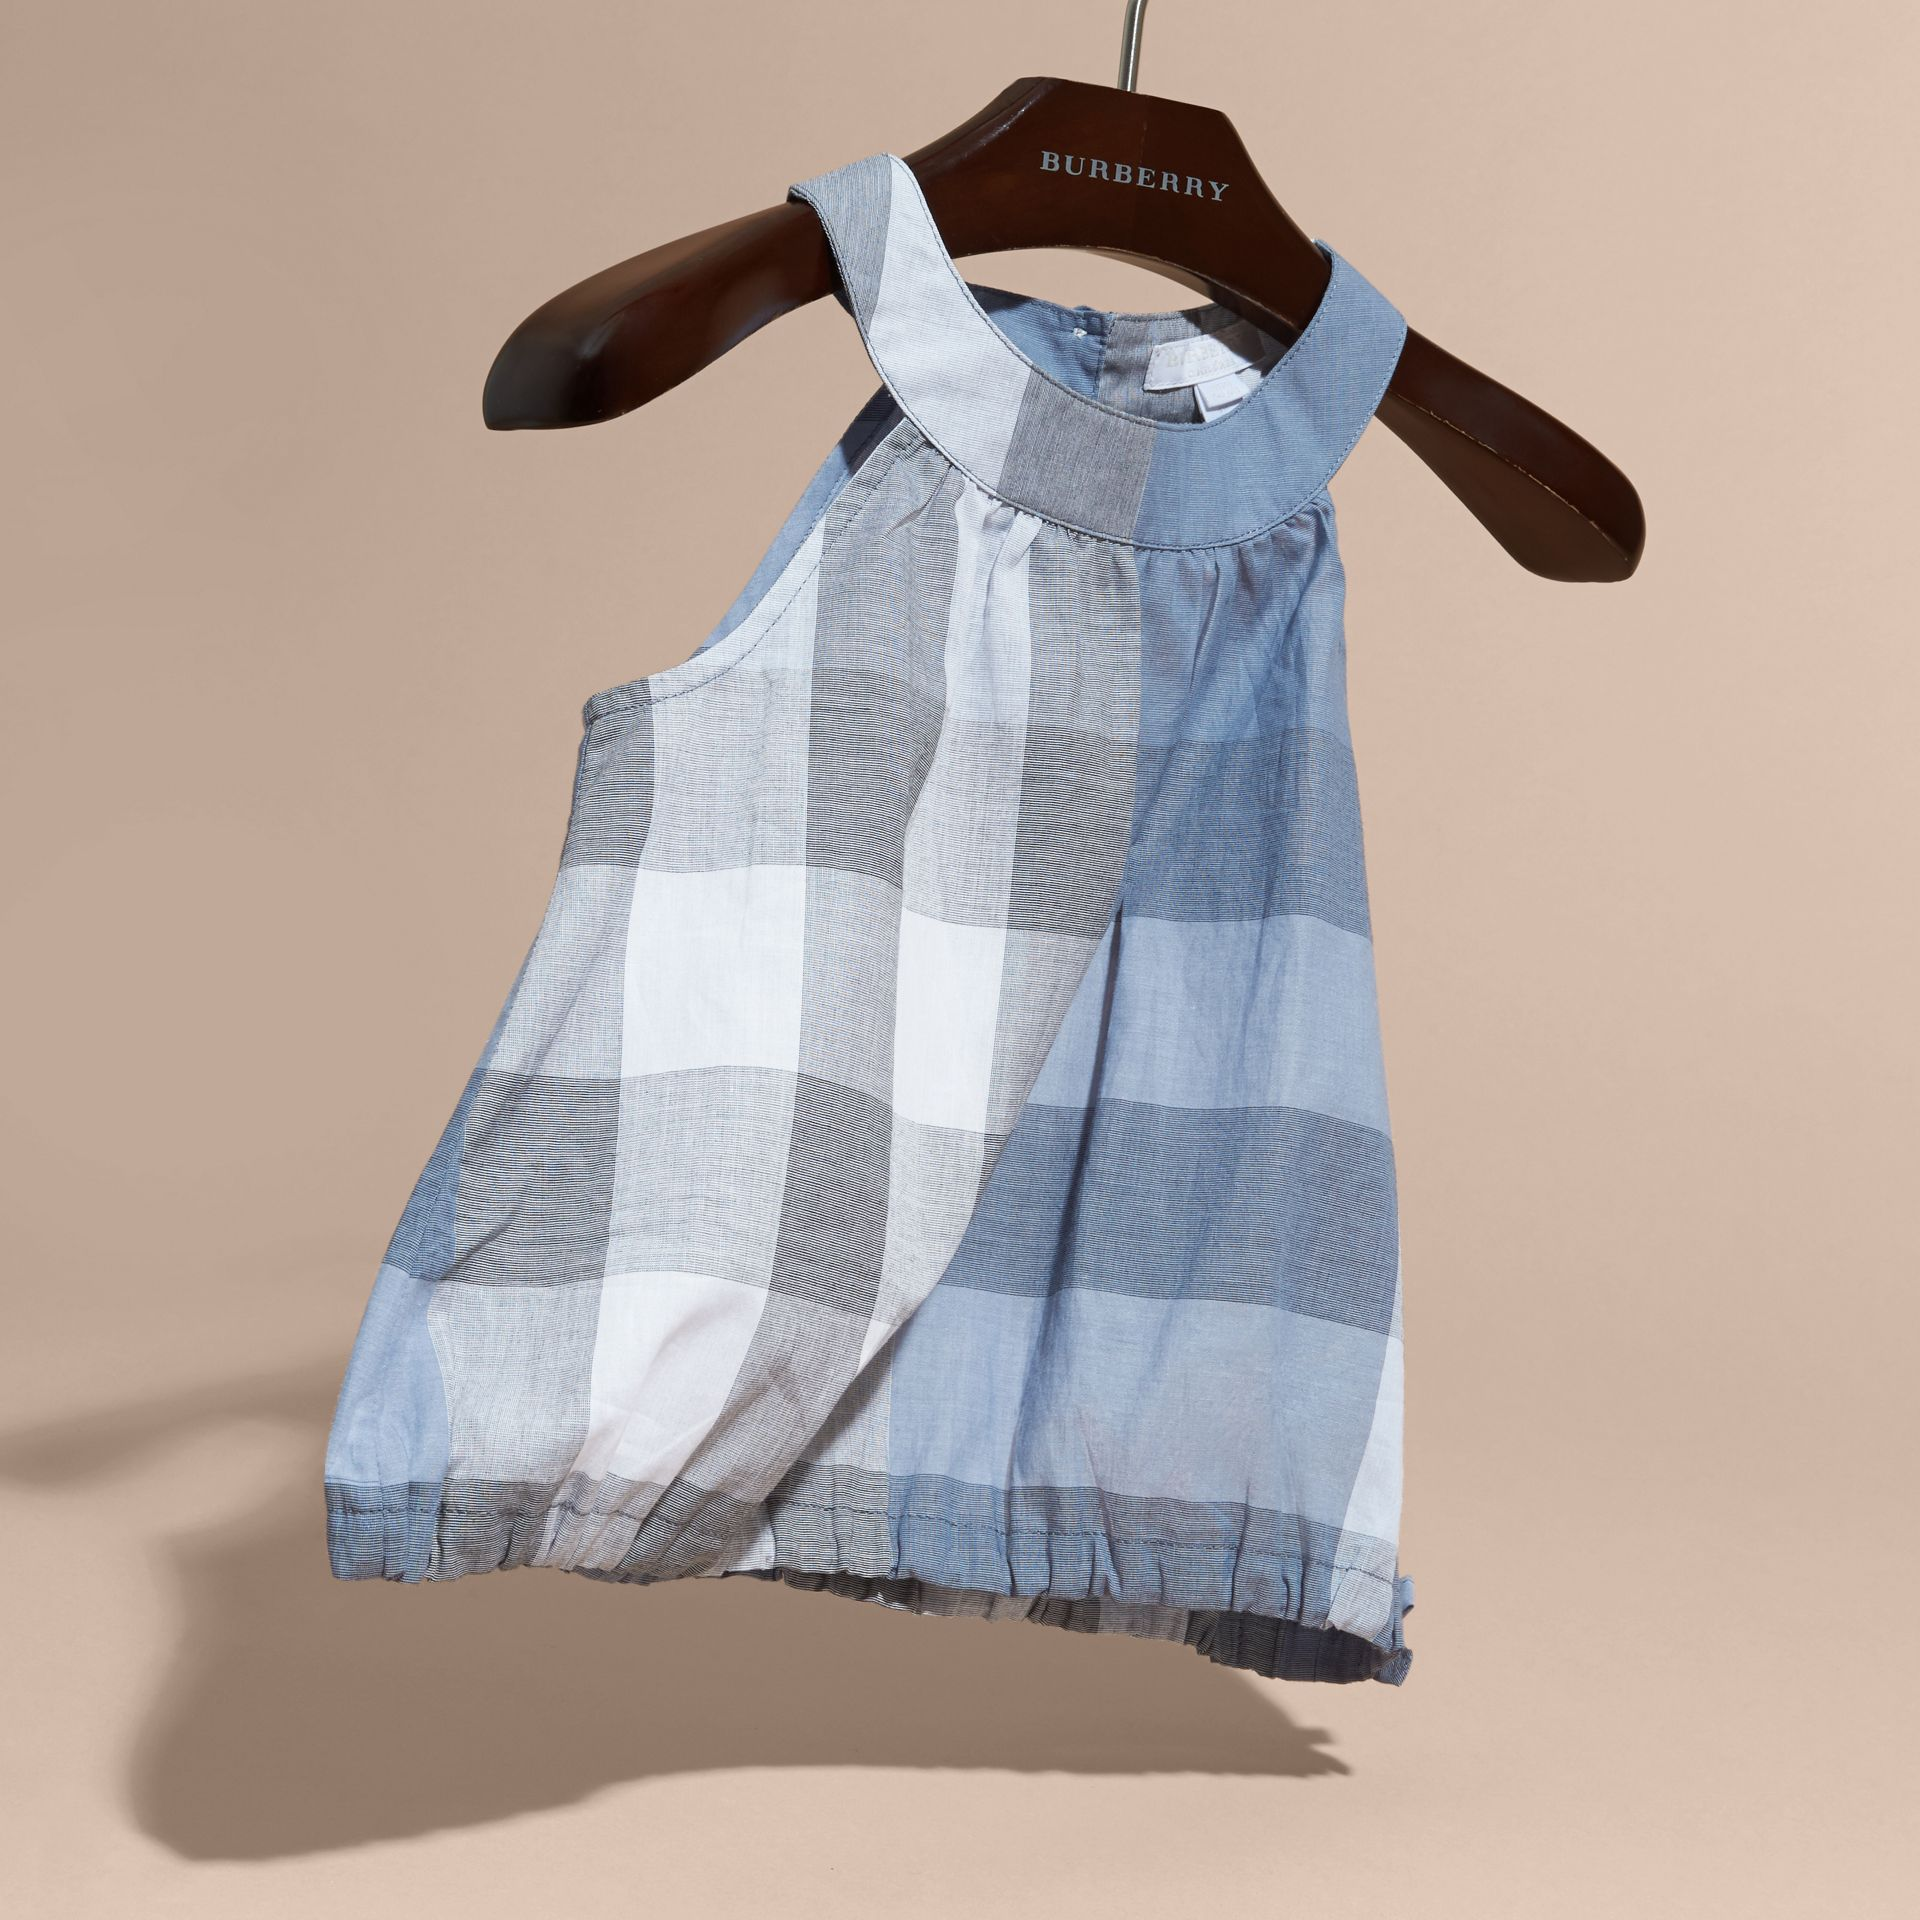 Gathered Check Cotton Top in Canvas Blue | Burberry - gallery image 3